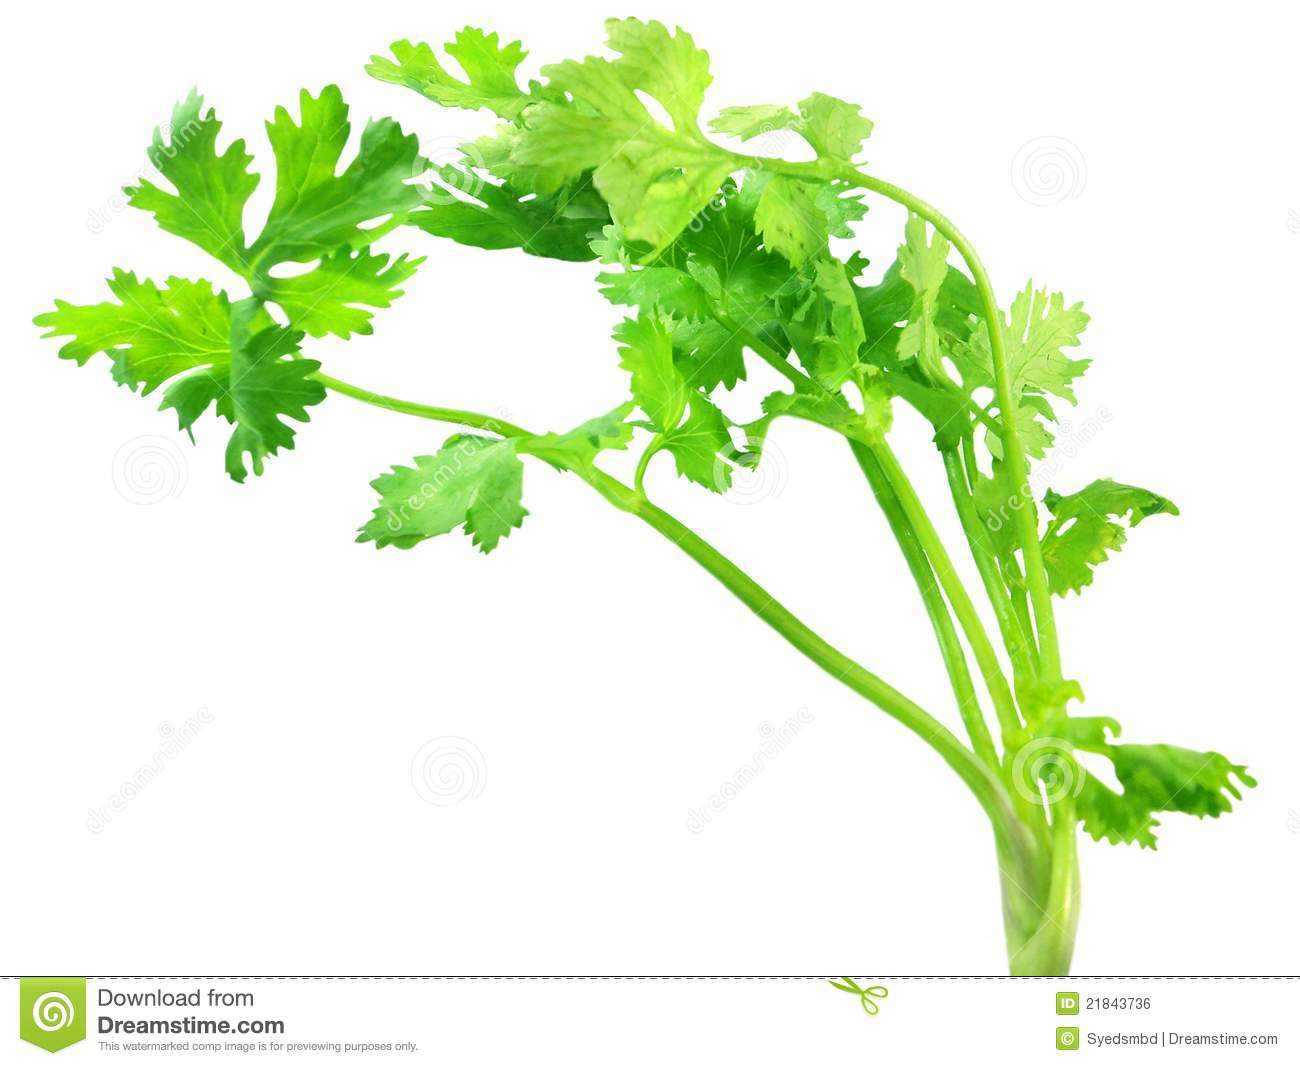 Coriander Leaves Royalty Free Stock Image.